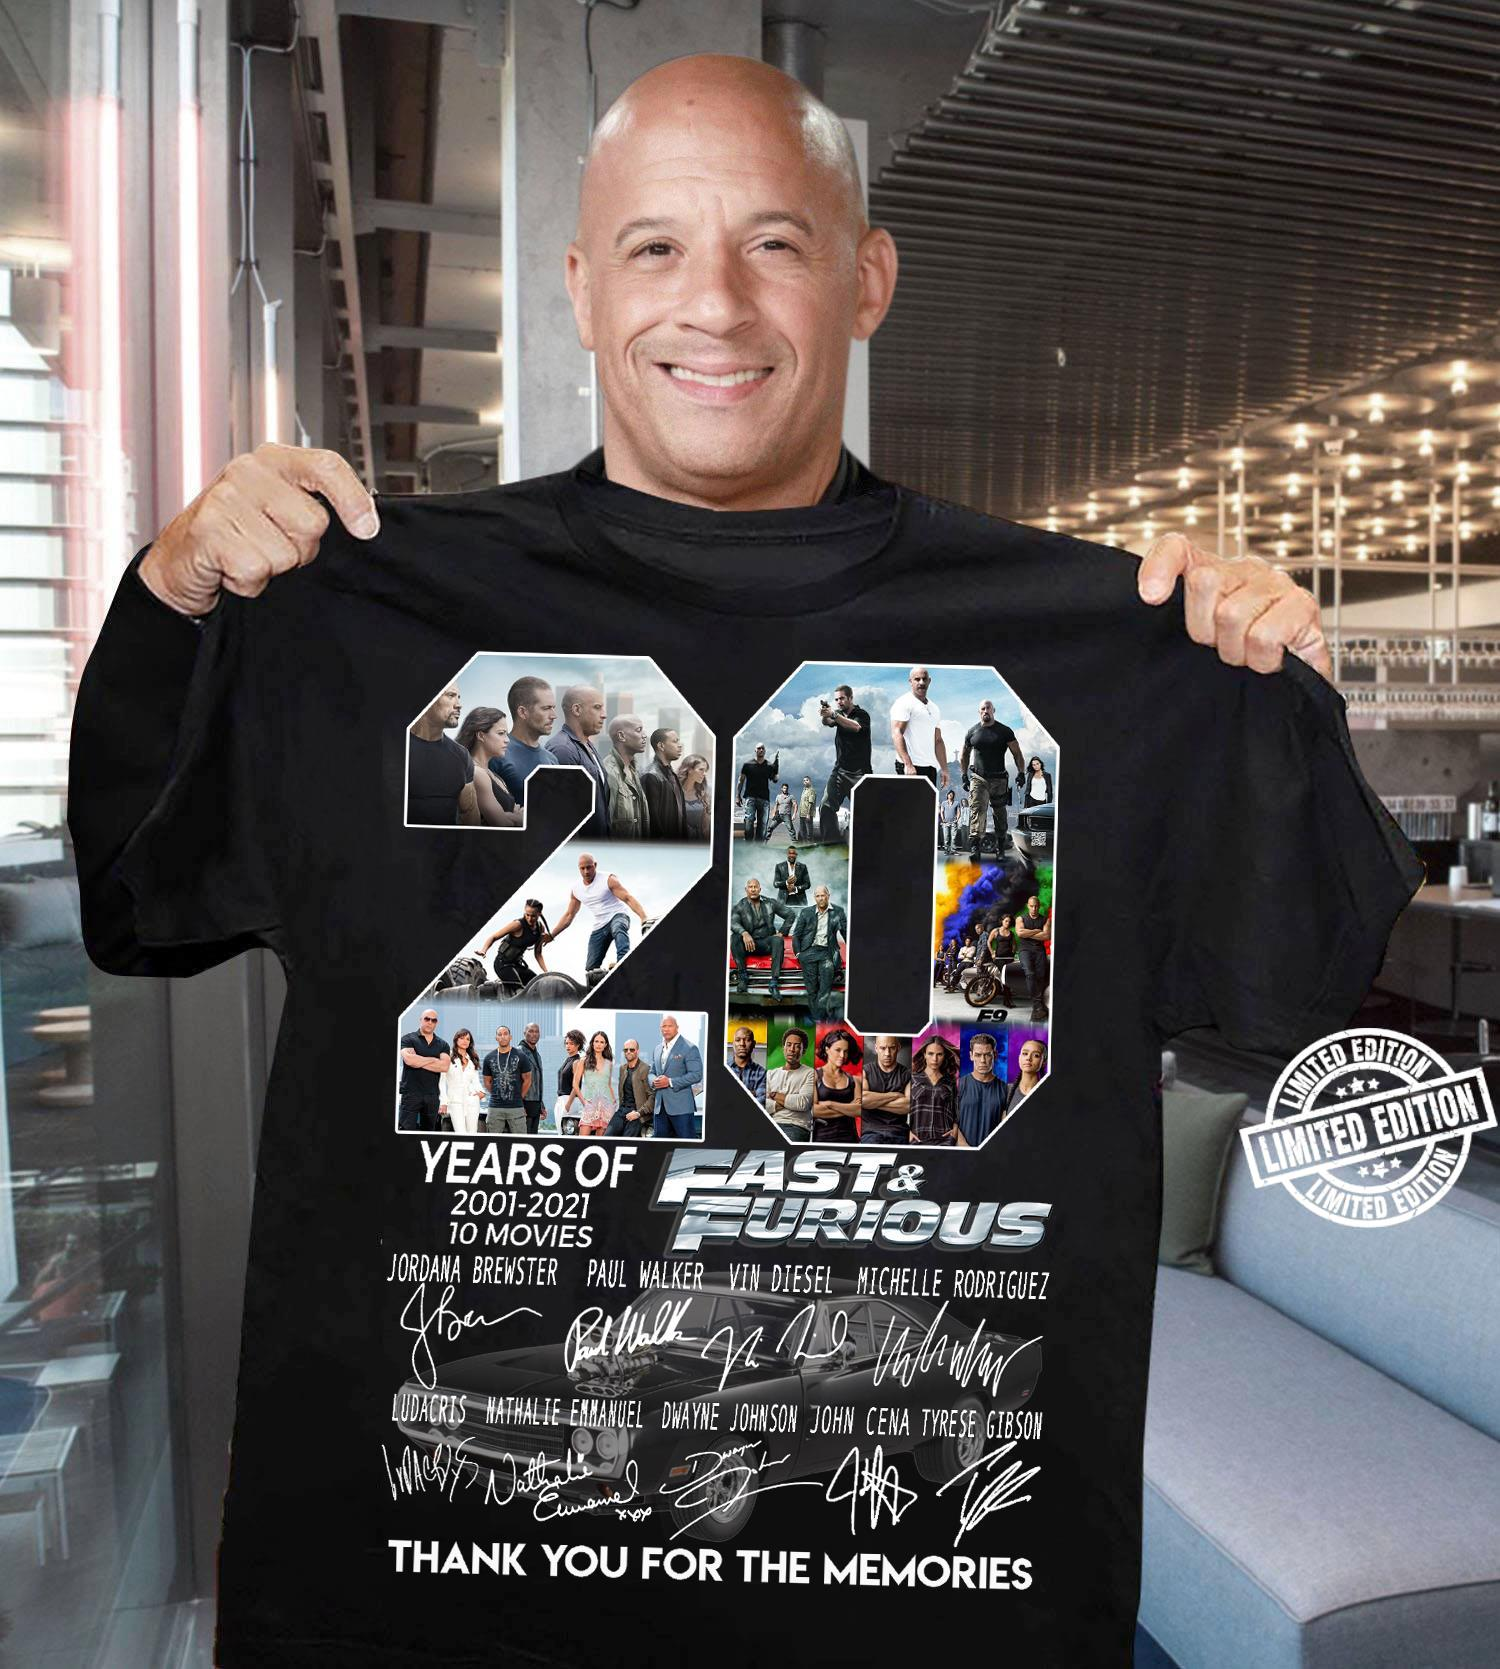 20 Years Of Fast And Furious 2001 2021 10 Movies Thank You For The Memories Shirt